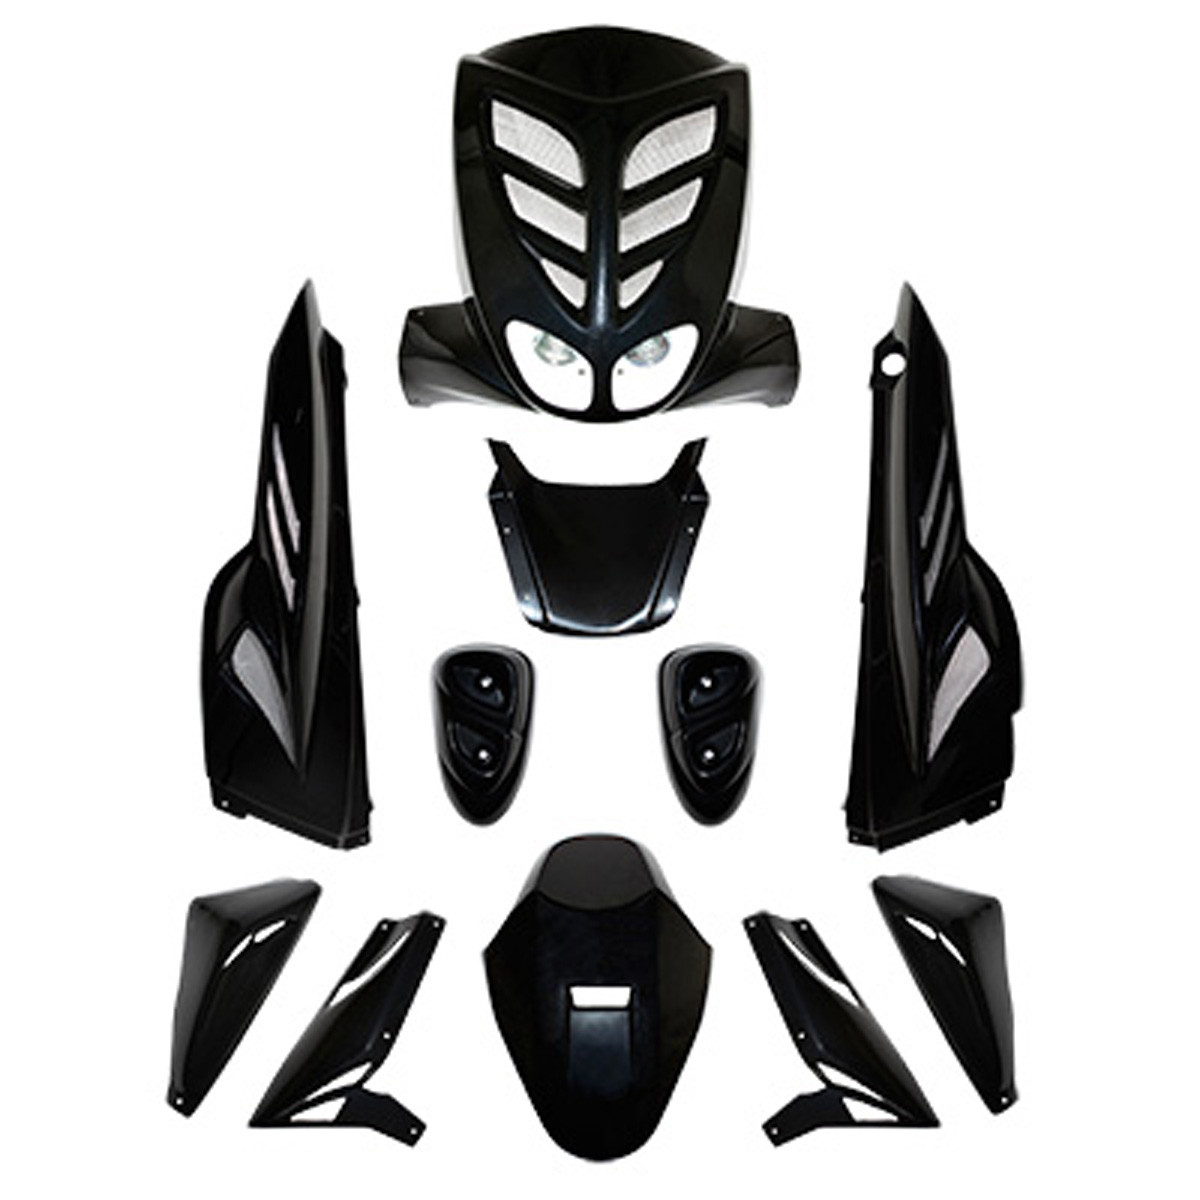 Kit Carénages MBK Stunt Yamaha Slider - BCD Xtrem Noir